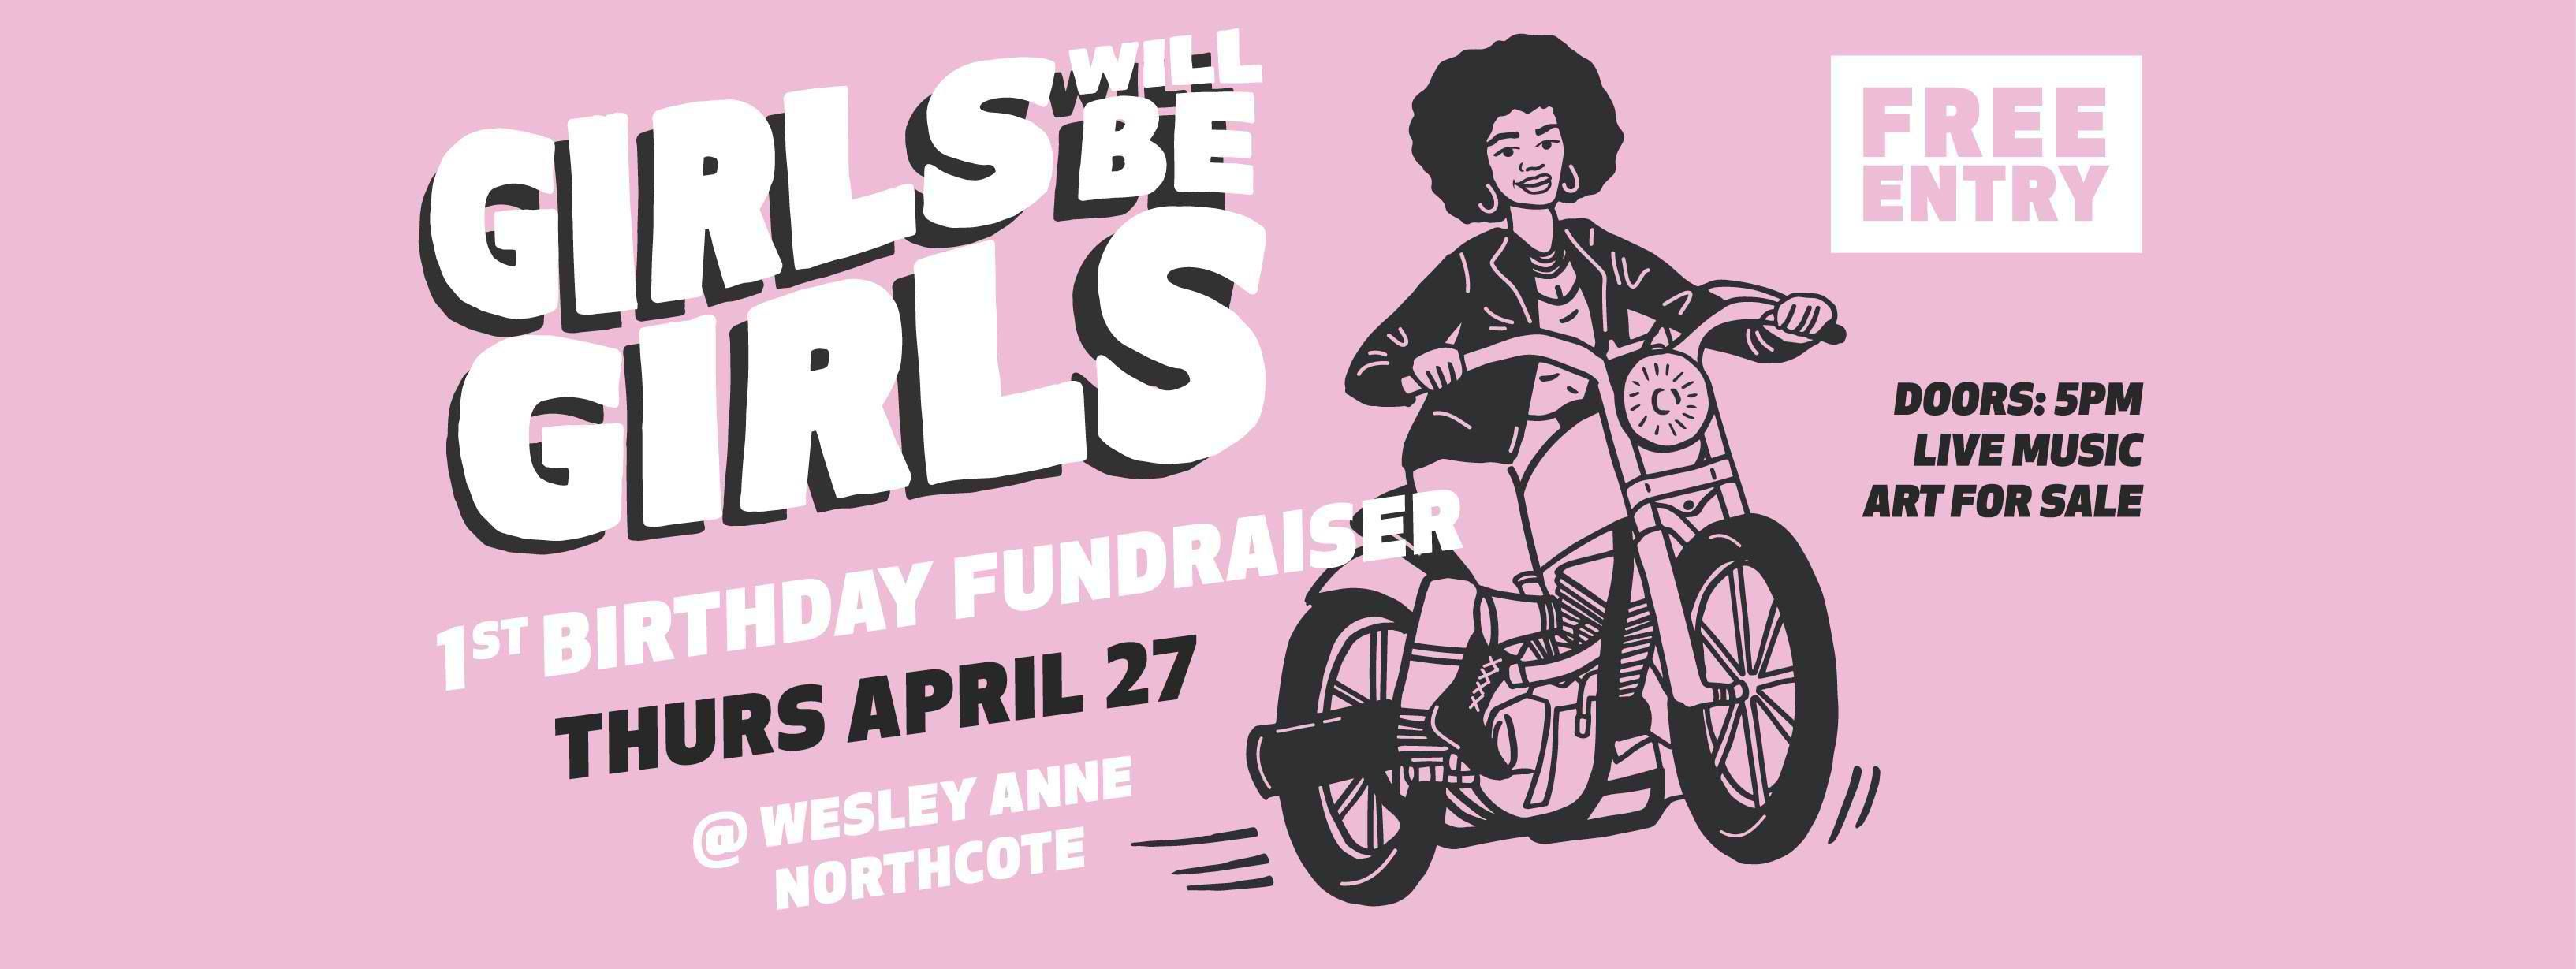 Girls Will Be Girls Birthday plus Fundraiser. Enjoy a